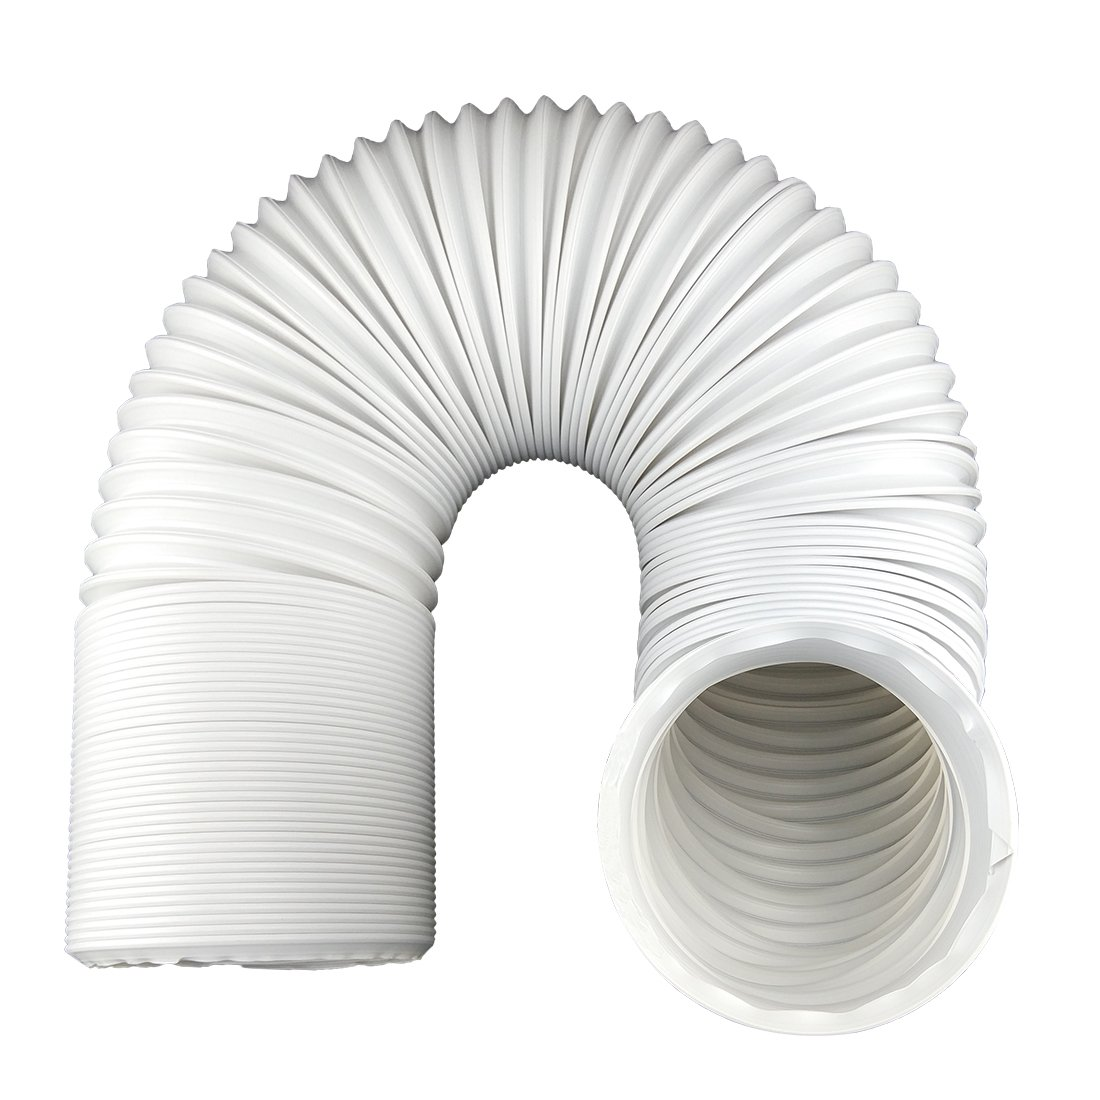 TuhooMall Portable Air Conditioner Exhaust Hose 5 Inch Diameter Counterclockwise (59 Inch Length)